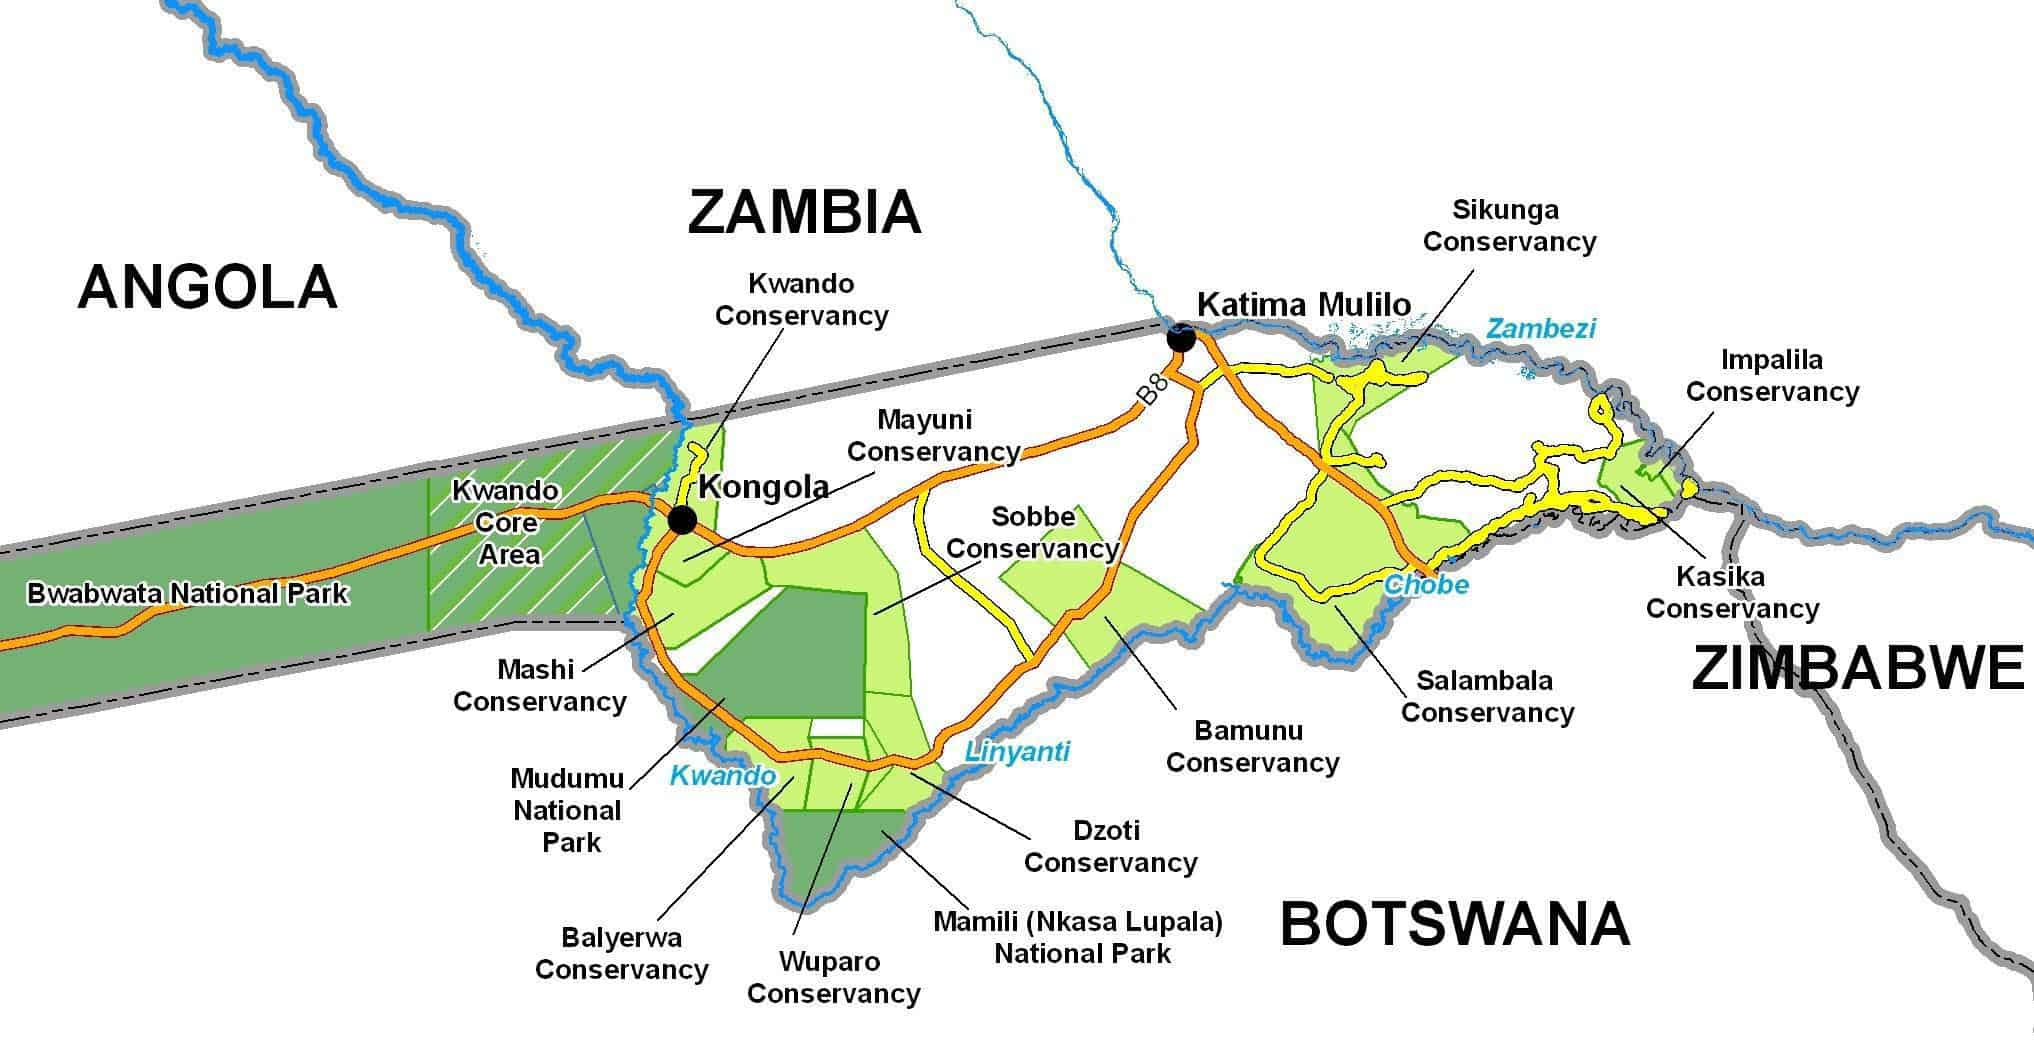 https://blog.tracks4africa.co.za/wp-content/uploads/2014/04/Zambezi-region.jpg